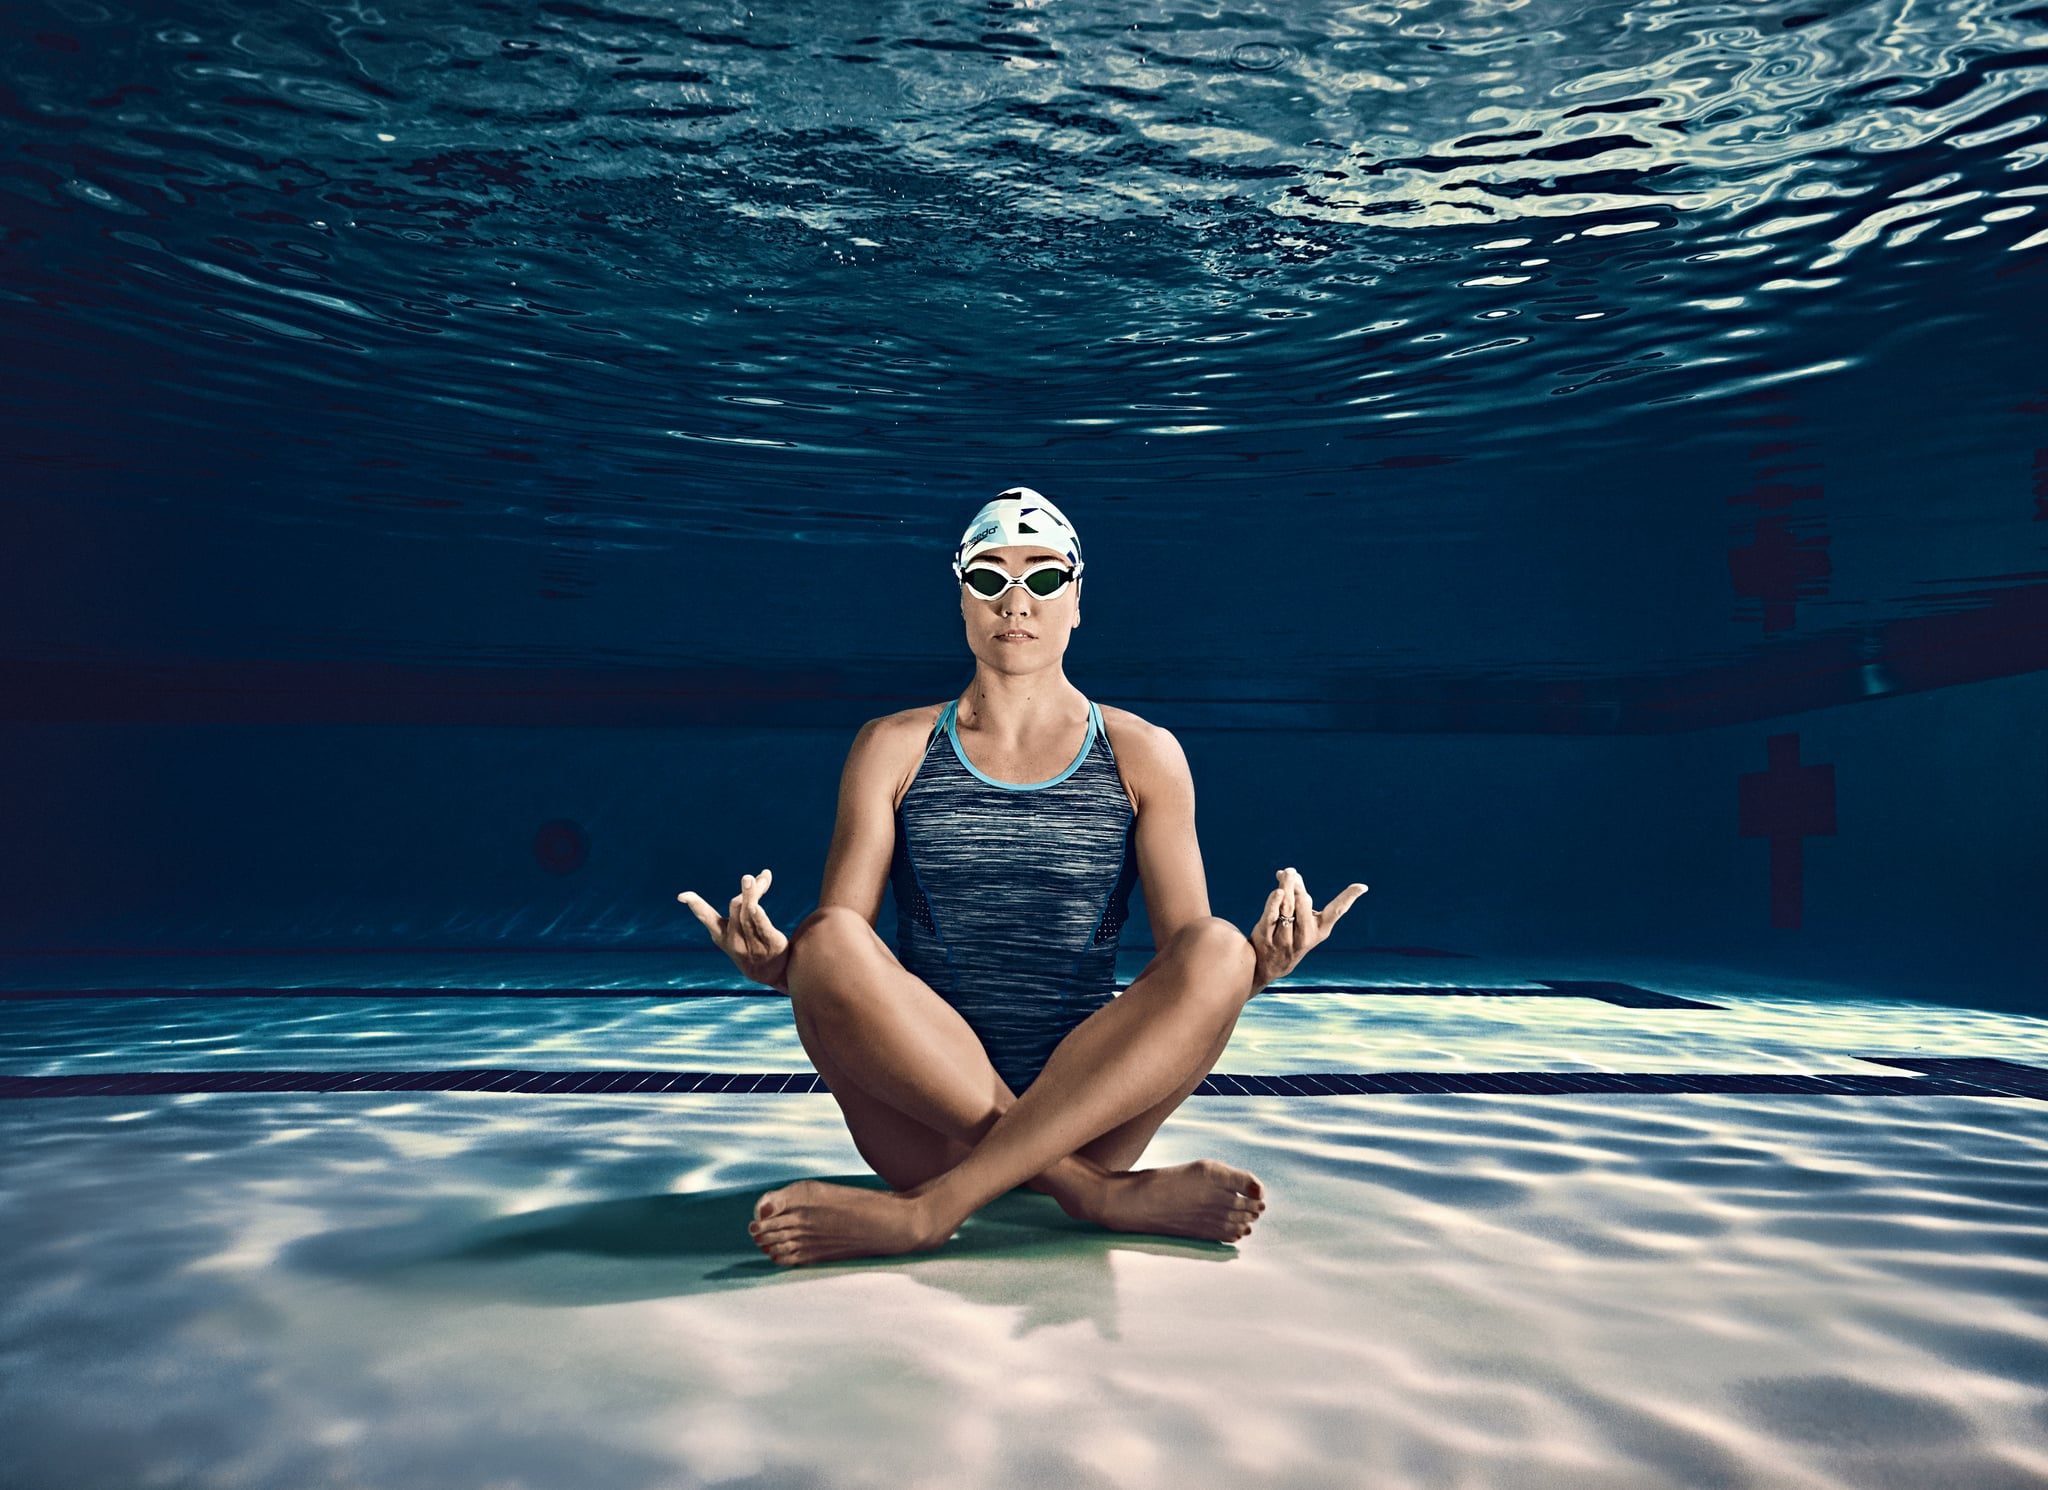 6 Health and Fitness Tips From OlympicAthletes 6 Health and Fitness Tips From OlympicAthletes new images